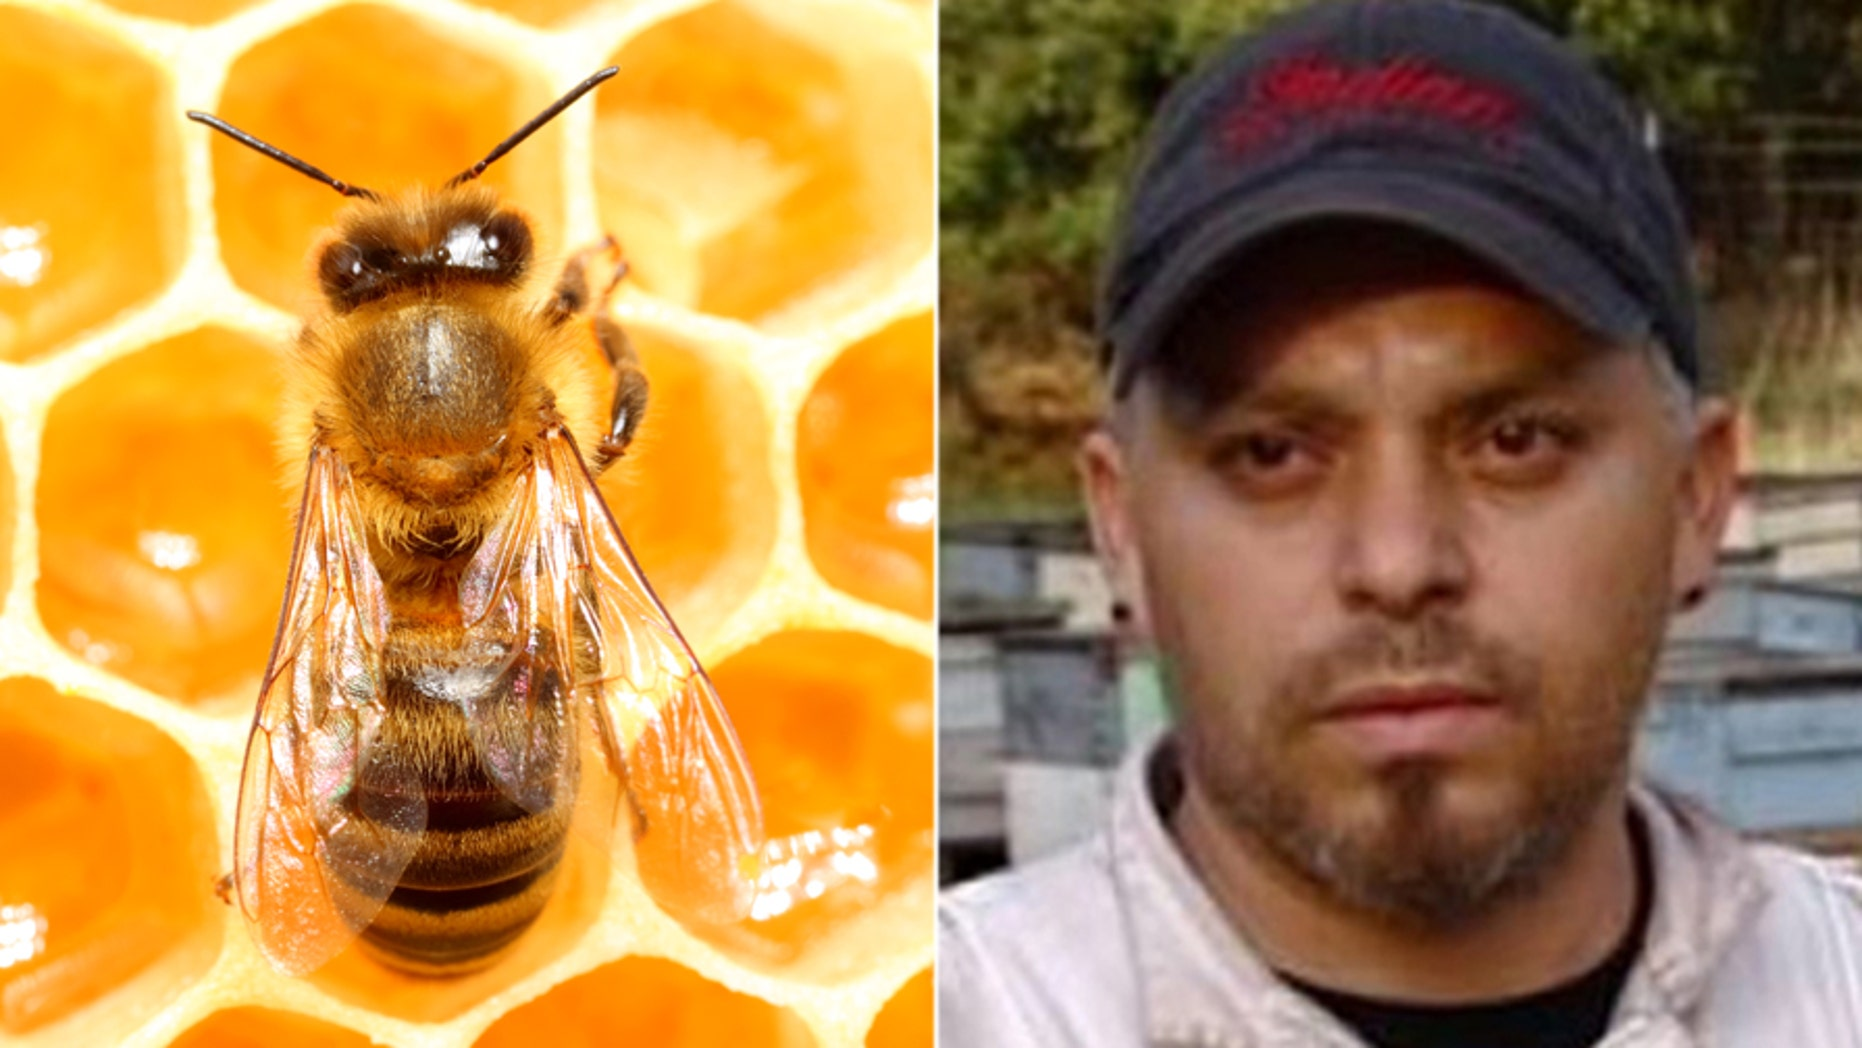 An estimated 200,000 honeybees owned by beekeeper Alfonso Perez were killed Saturday after suspected vandals doused them with gasoline.